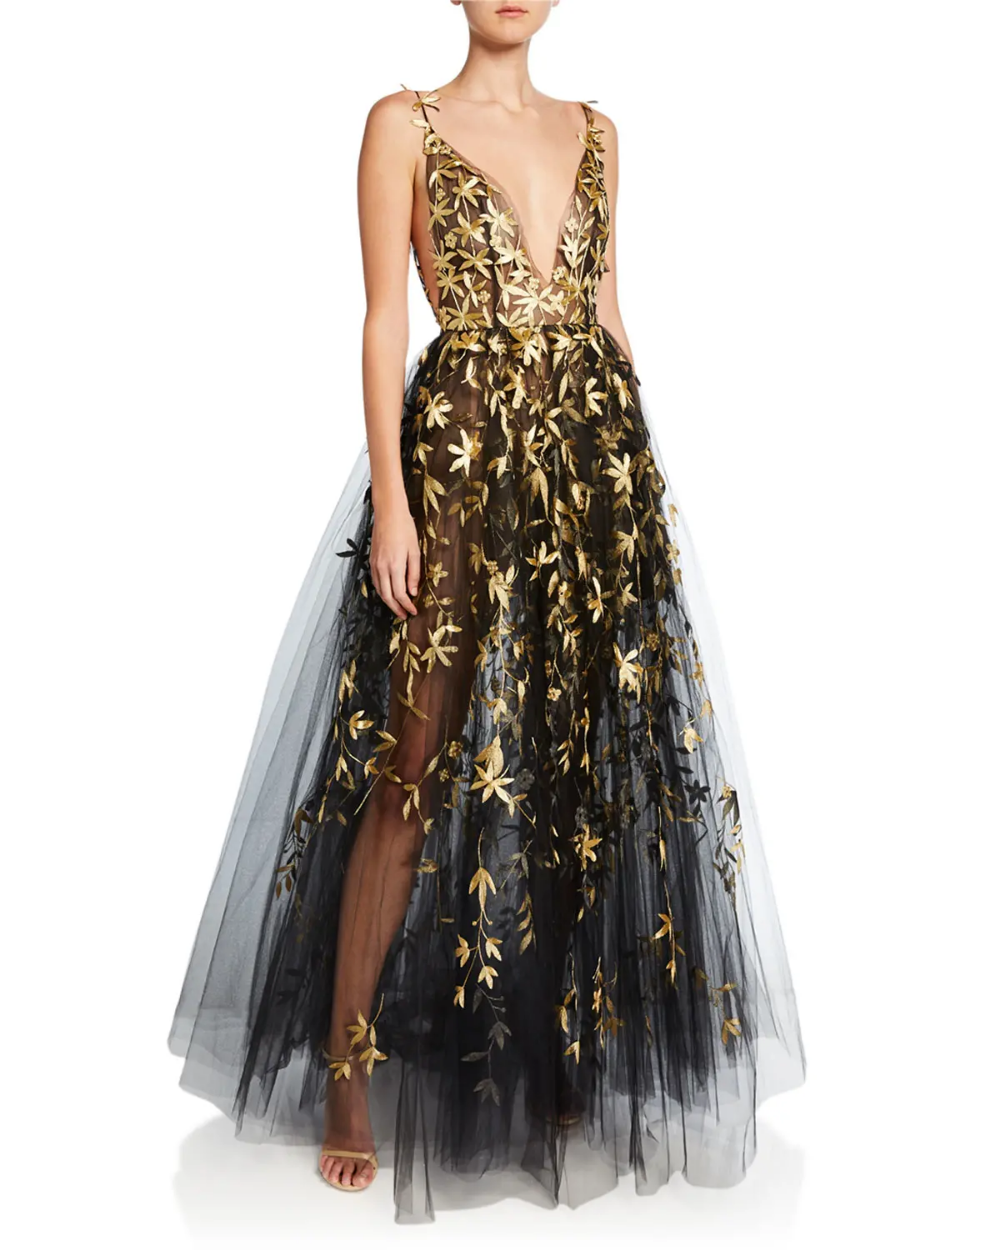 Oscar De La Renta Golden Floral Embroidered Tulle Illusion Gown In